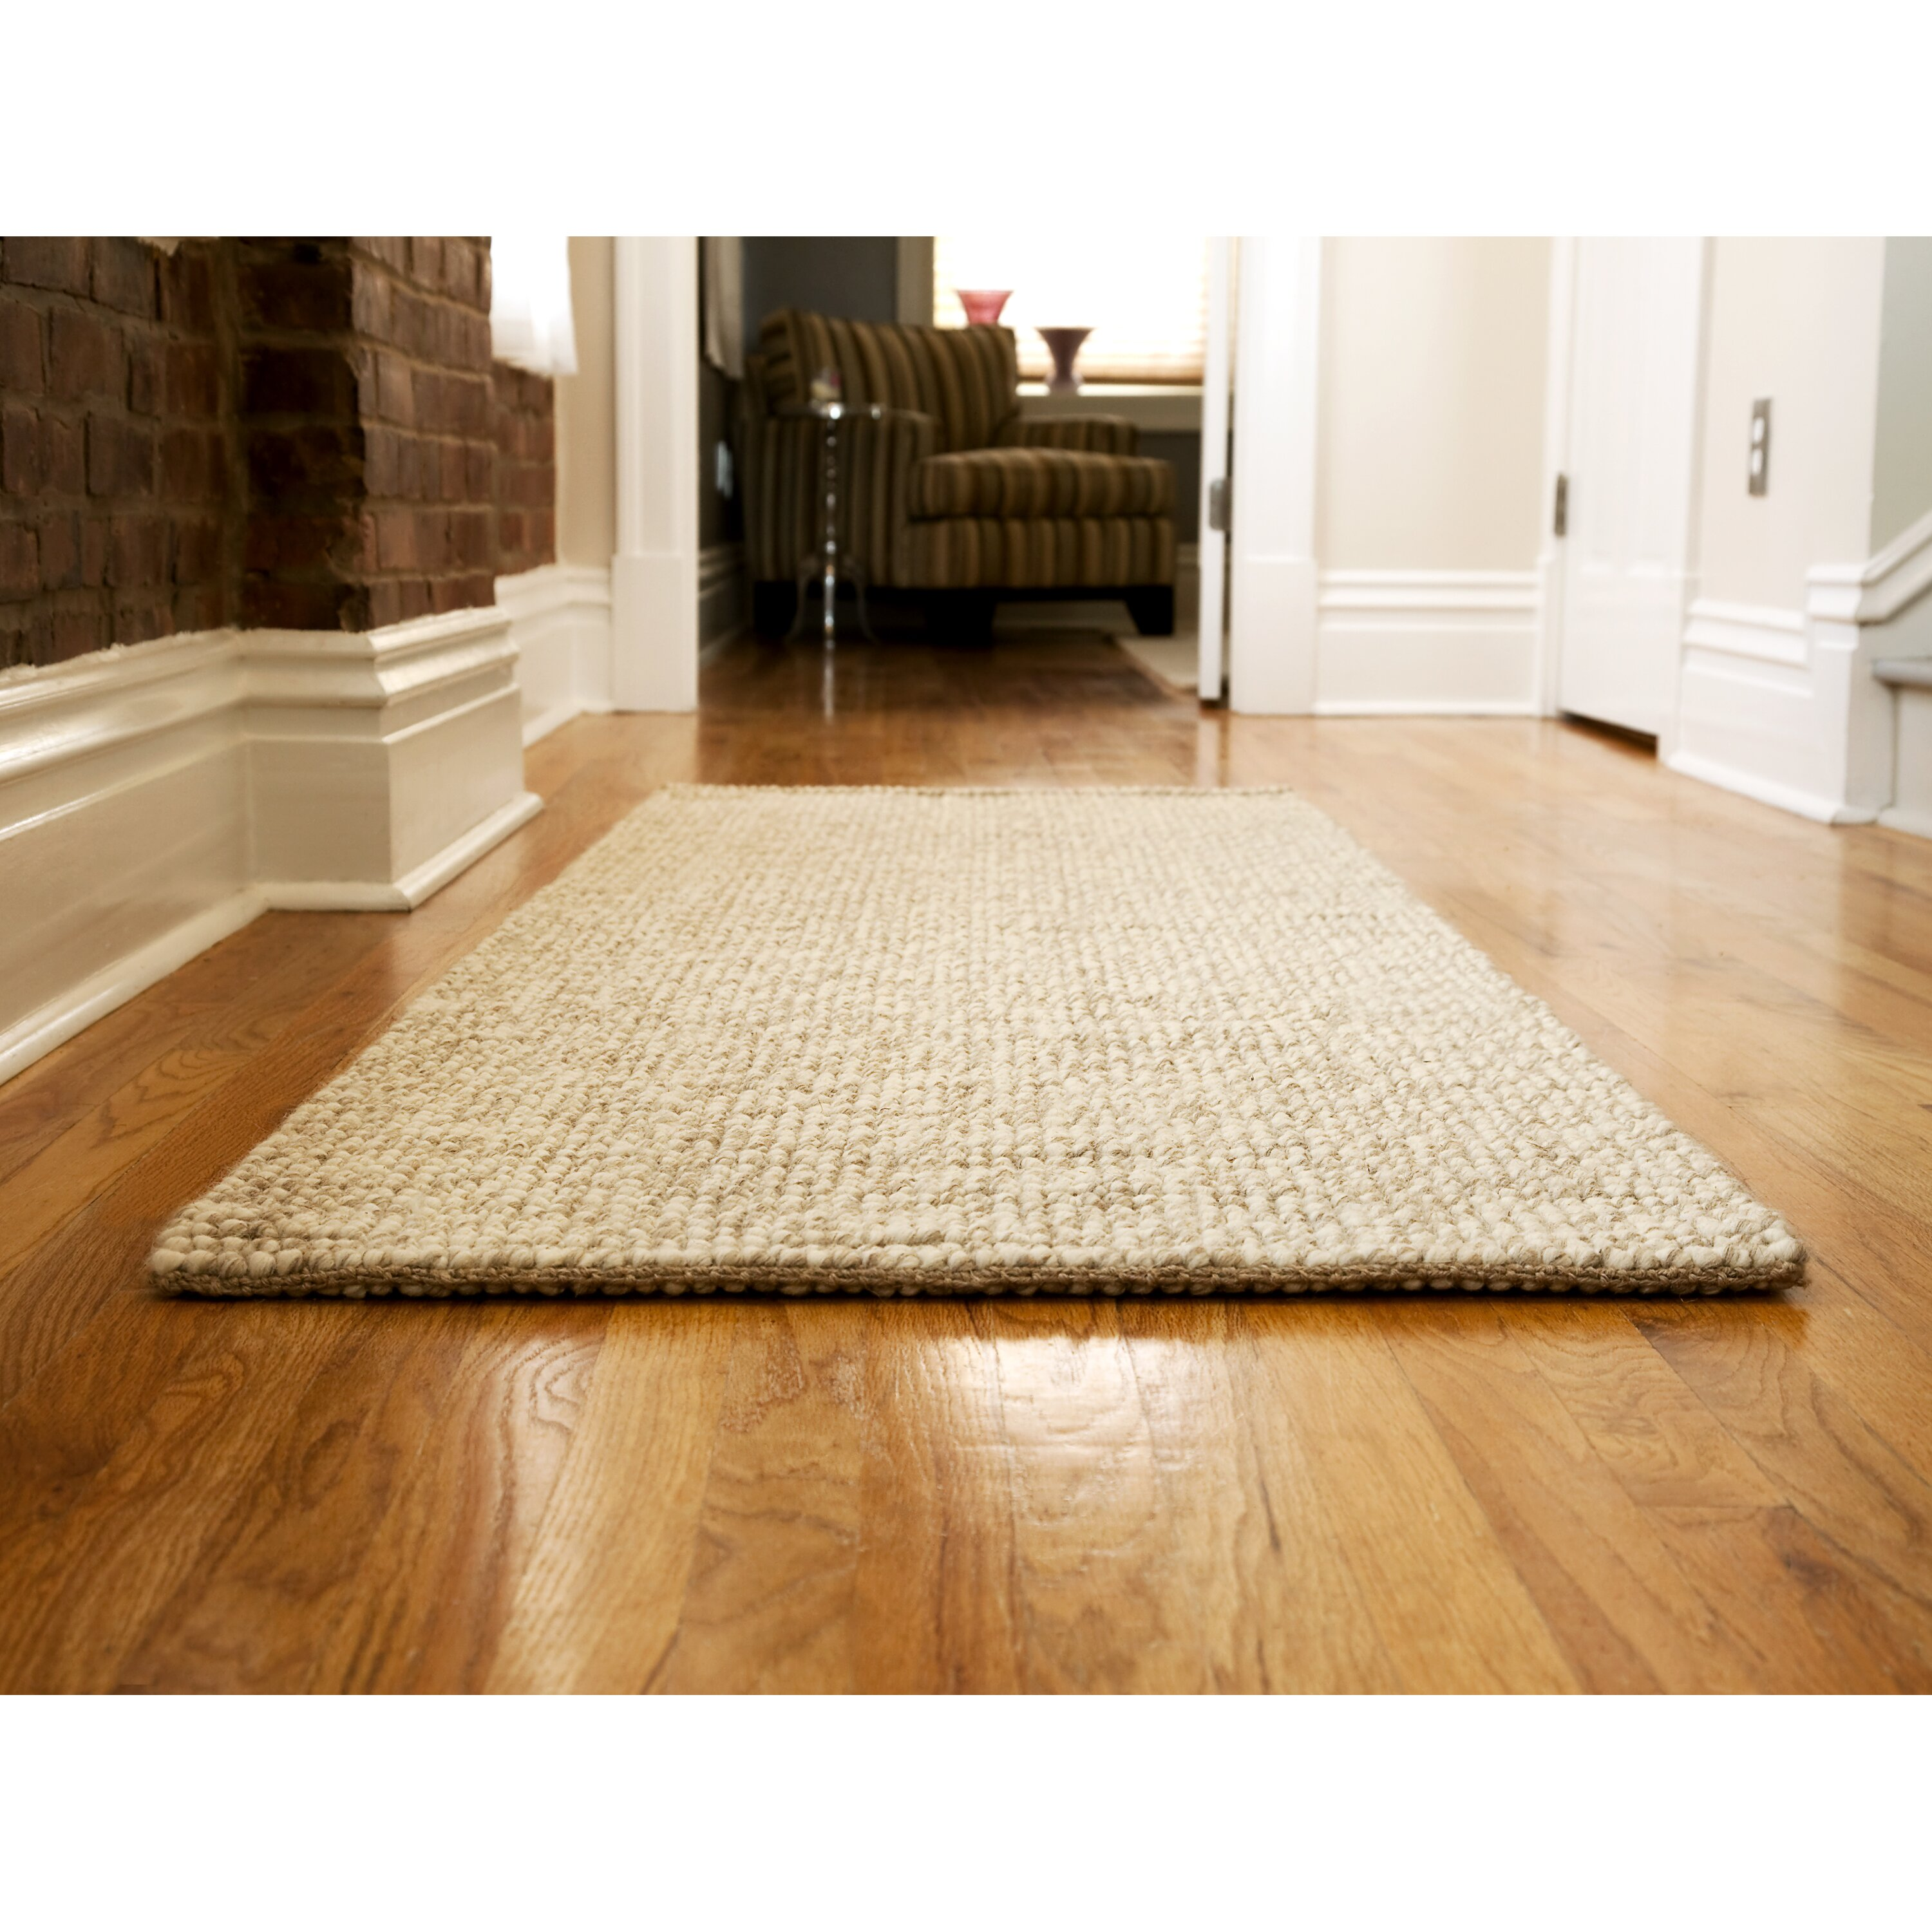 The Conestoga Trading Co Hereford Hand Woven Area Rug